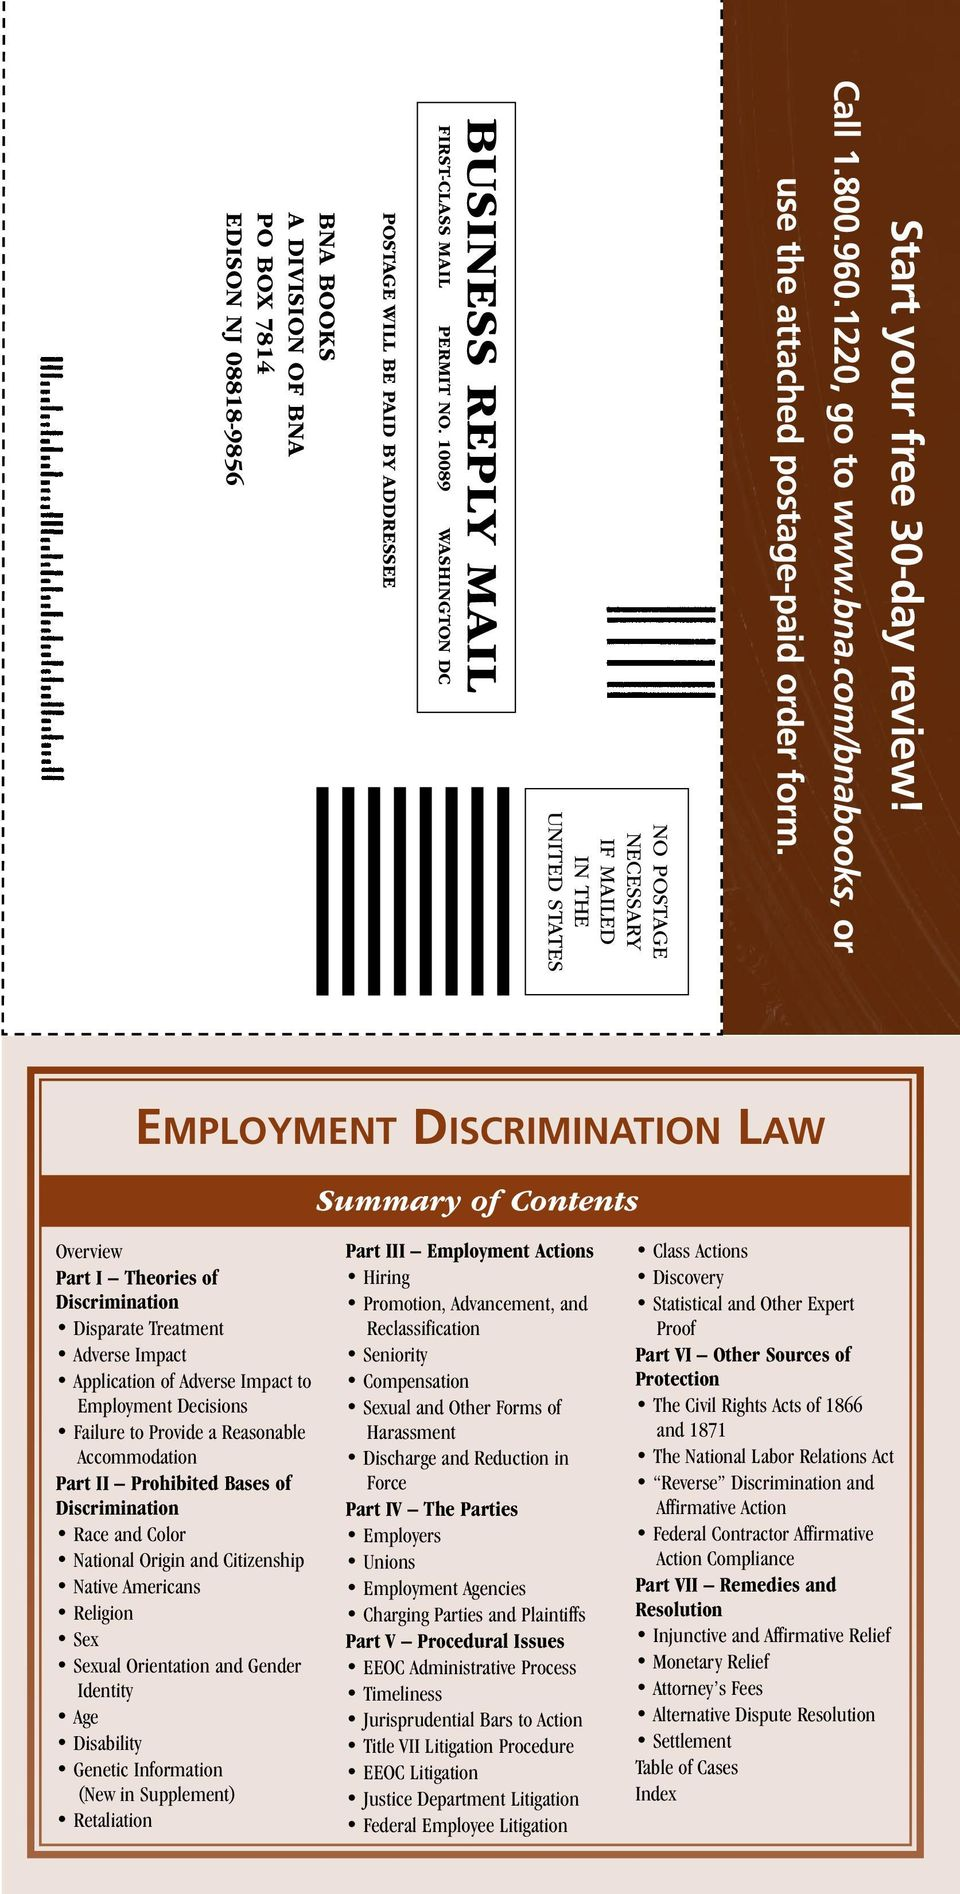 10089 WASHINGTON DC Postage will be paid by addressee BNA Books A division of BNA po box 7814 edison NJ 08818-9856 Employment Discrimination Law Summary of Contents Overview Part I Theories of